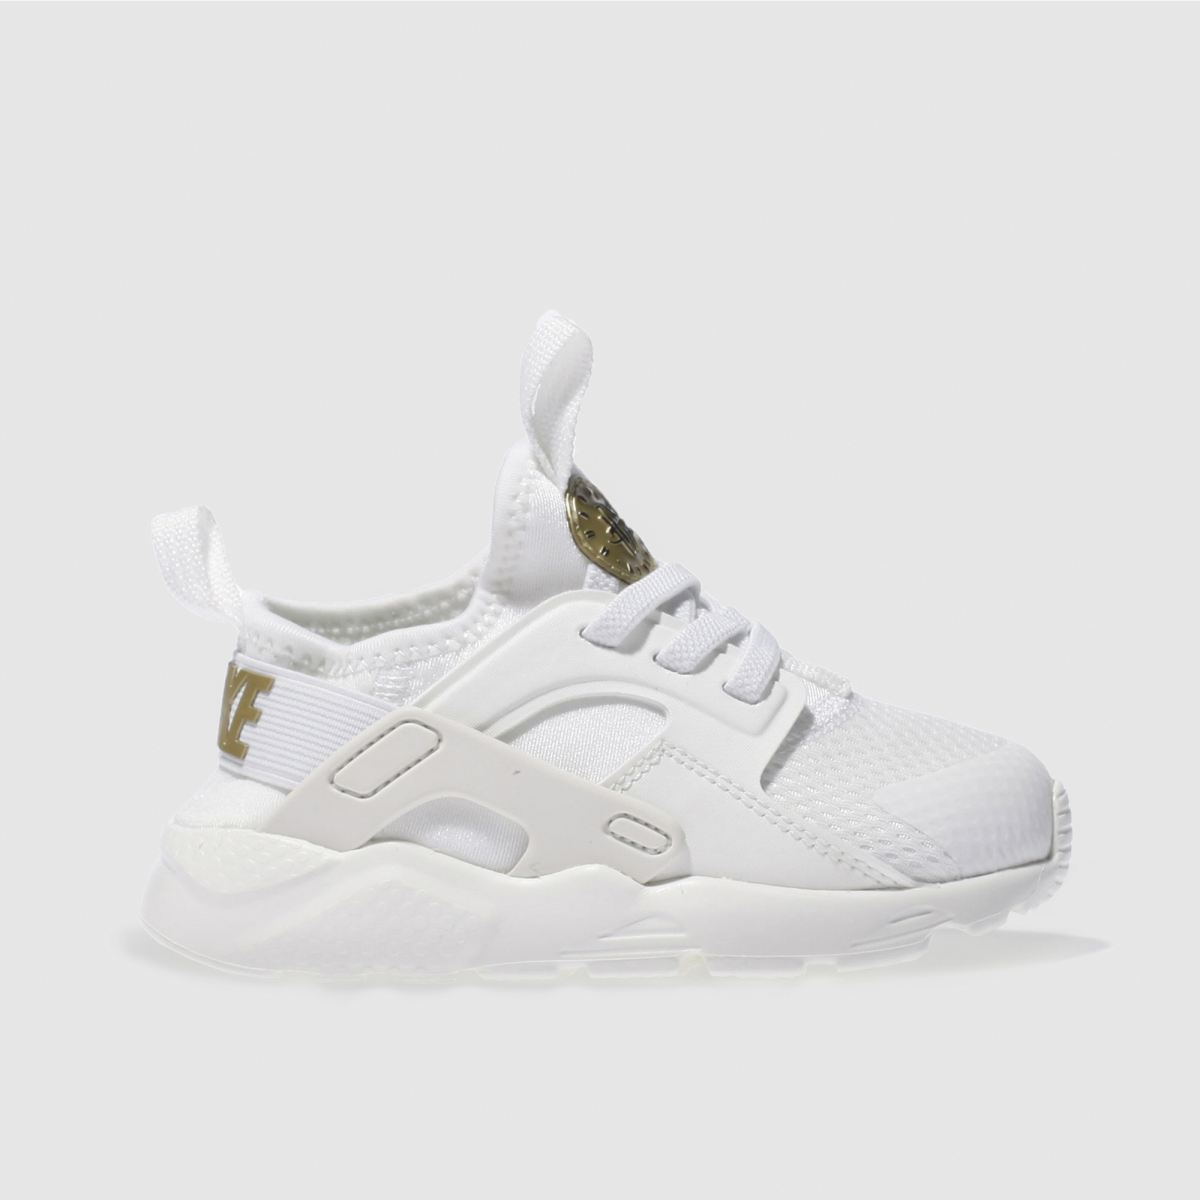 nike white & gold huarache ultra Toddler Trainers